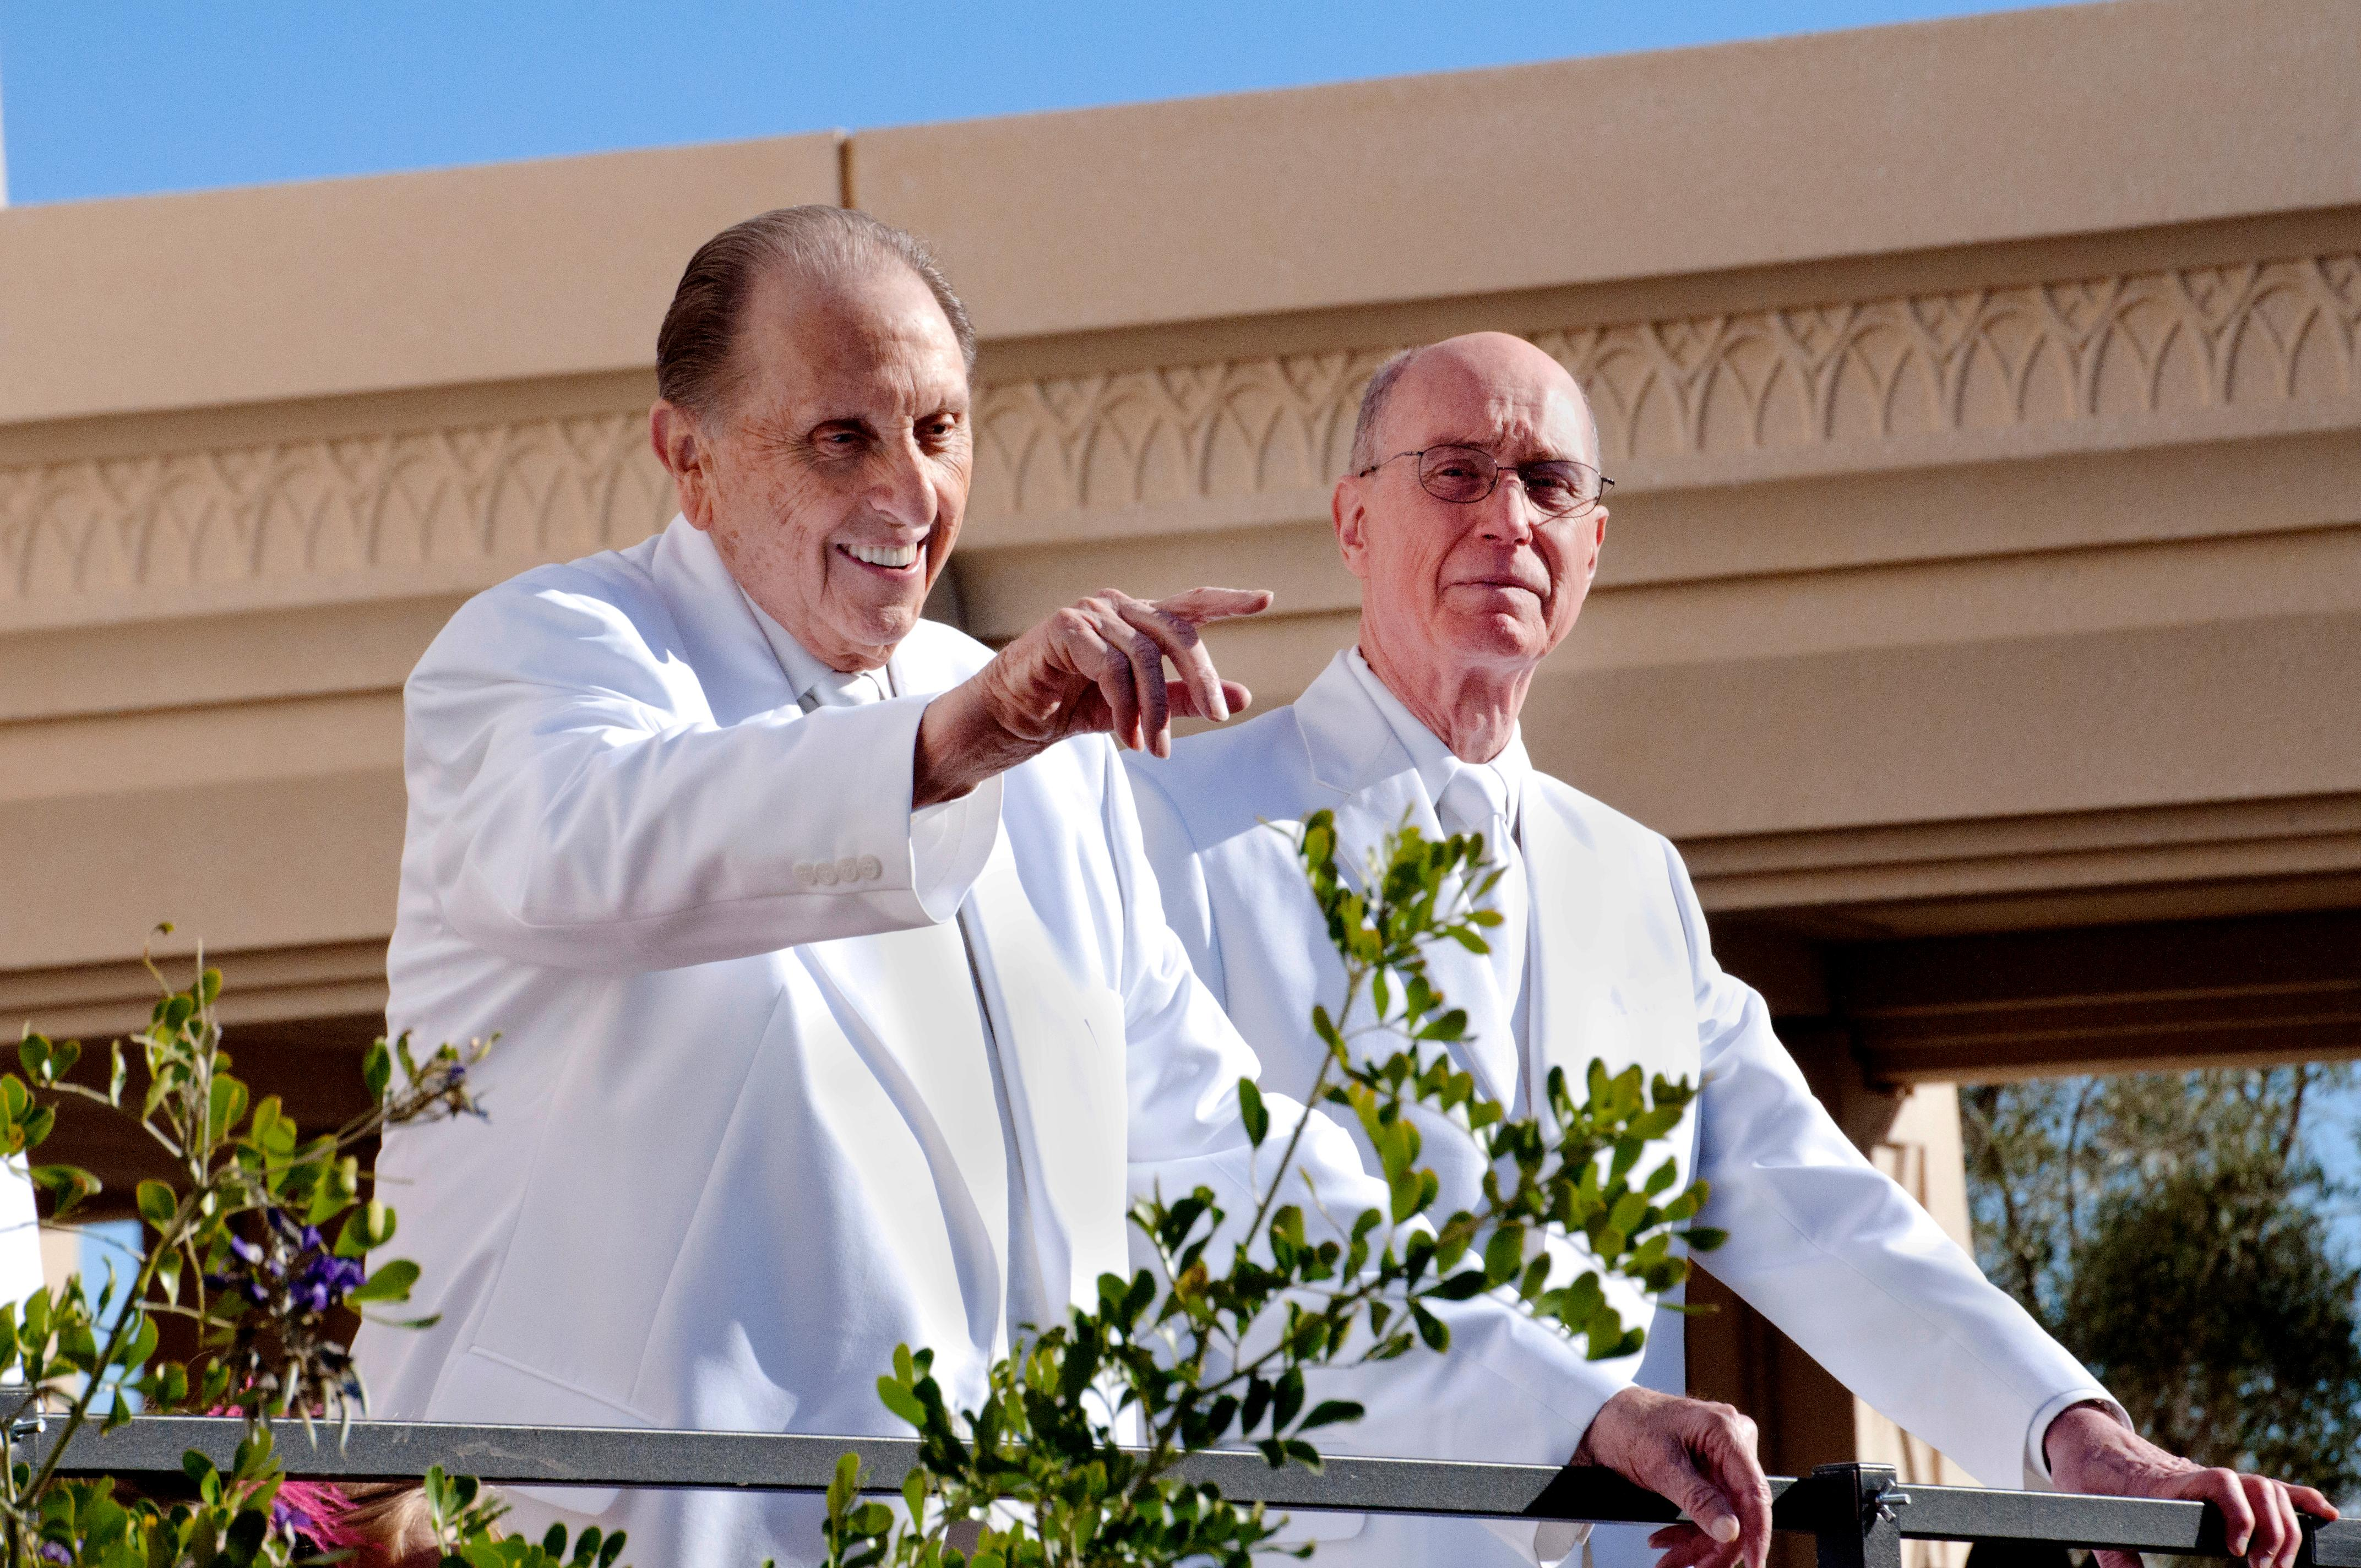 President Thomas S. Monson greets Latter-day Saints just prior to the dedication of the Gilbert Arizona Temple on March 2, 2014. President Henry B. Eyring, first counselor in the First Presidency of the Church, also attended. (Photo: MormonNewsroom.org){&amp;nbsp;}<p></p>